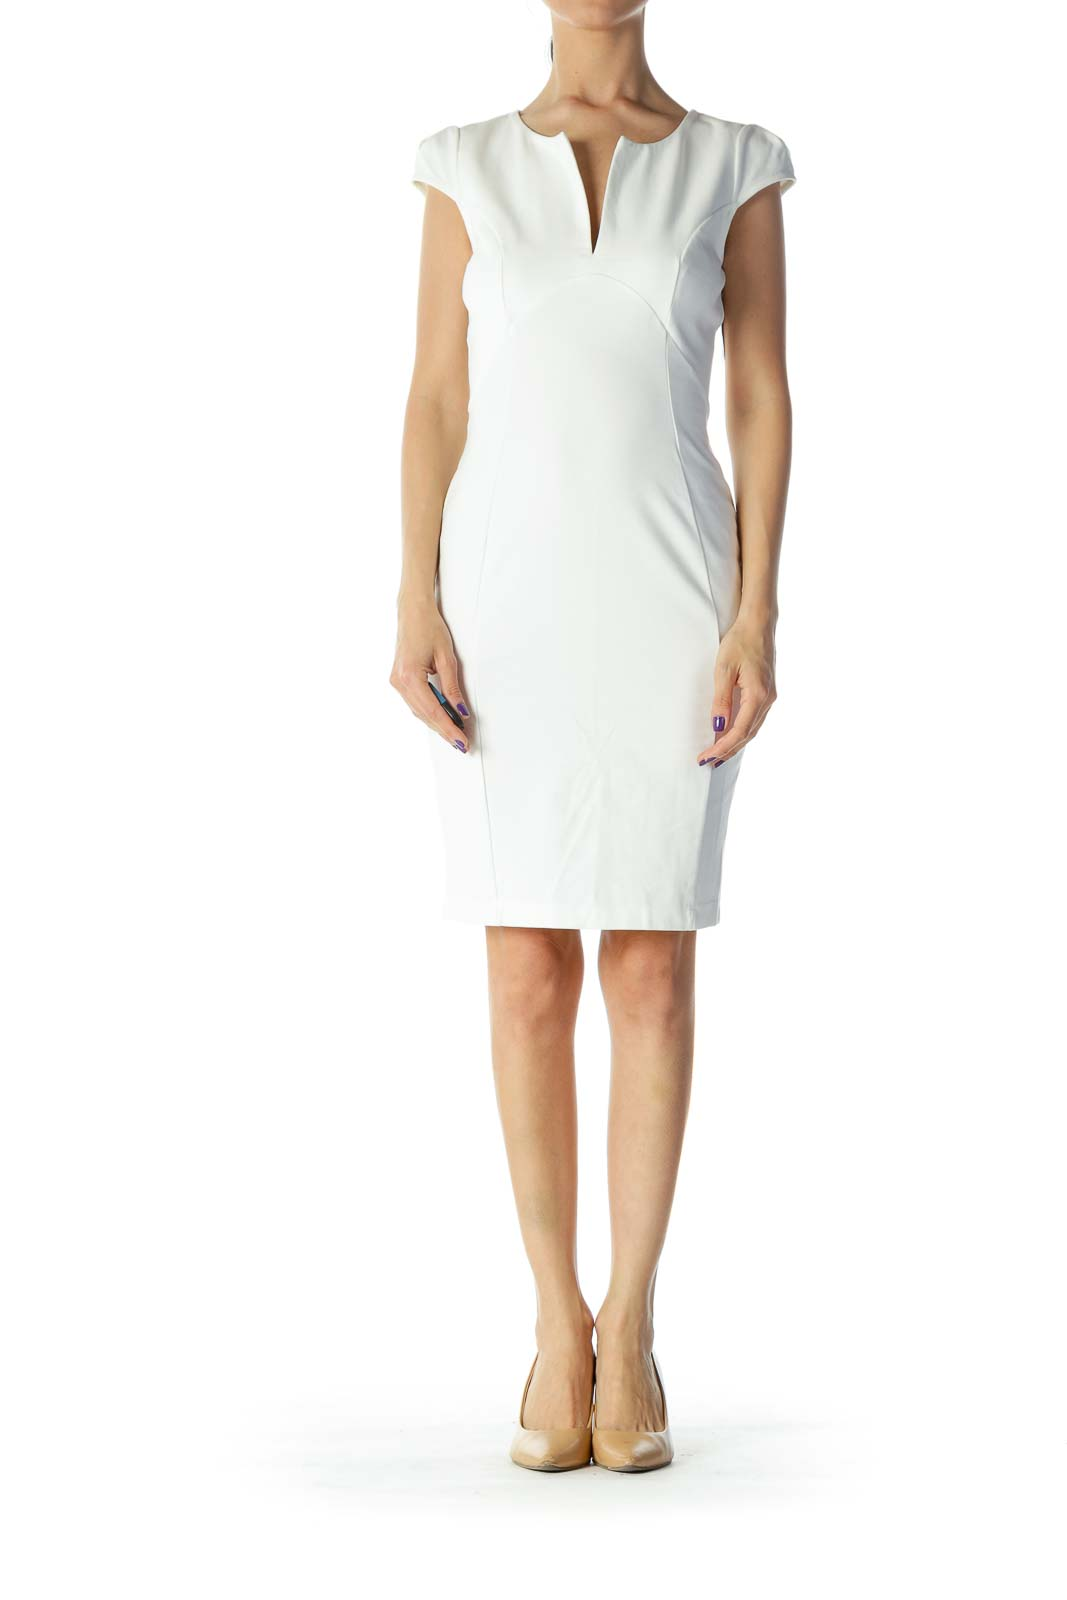 Cream Bodycon Work Dress